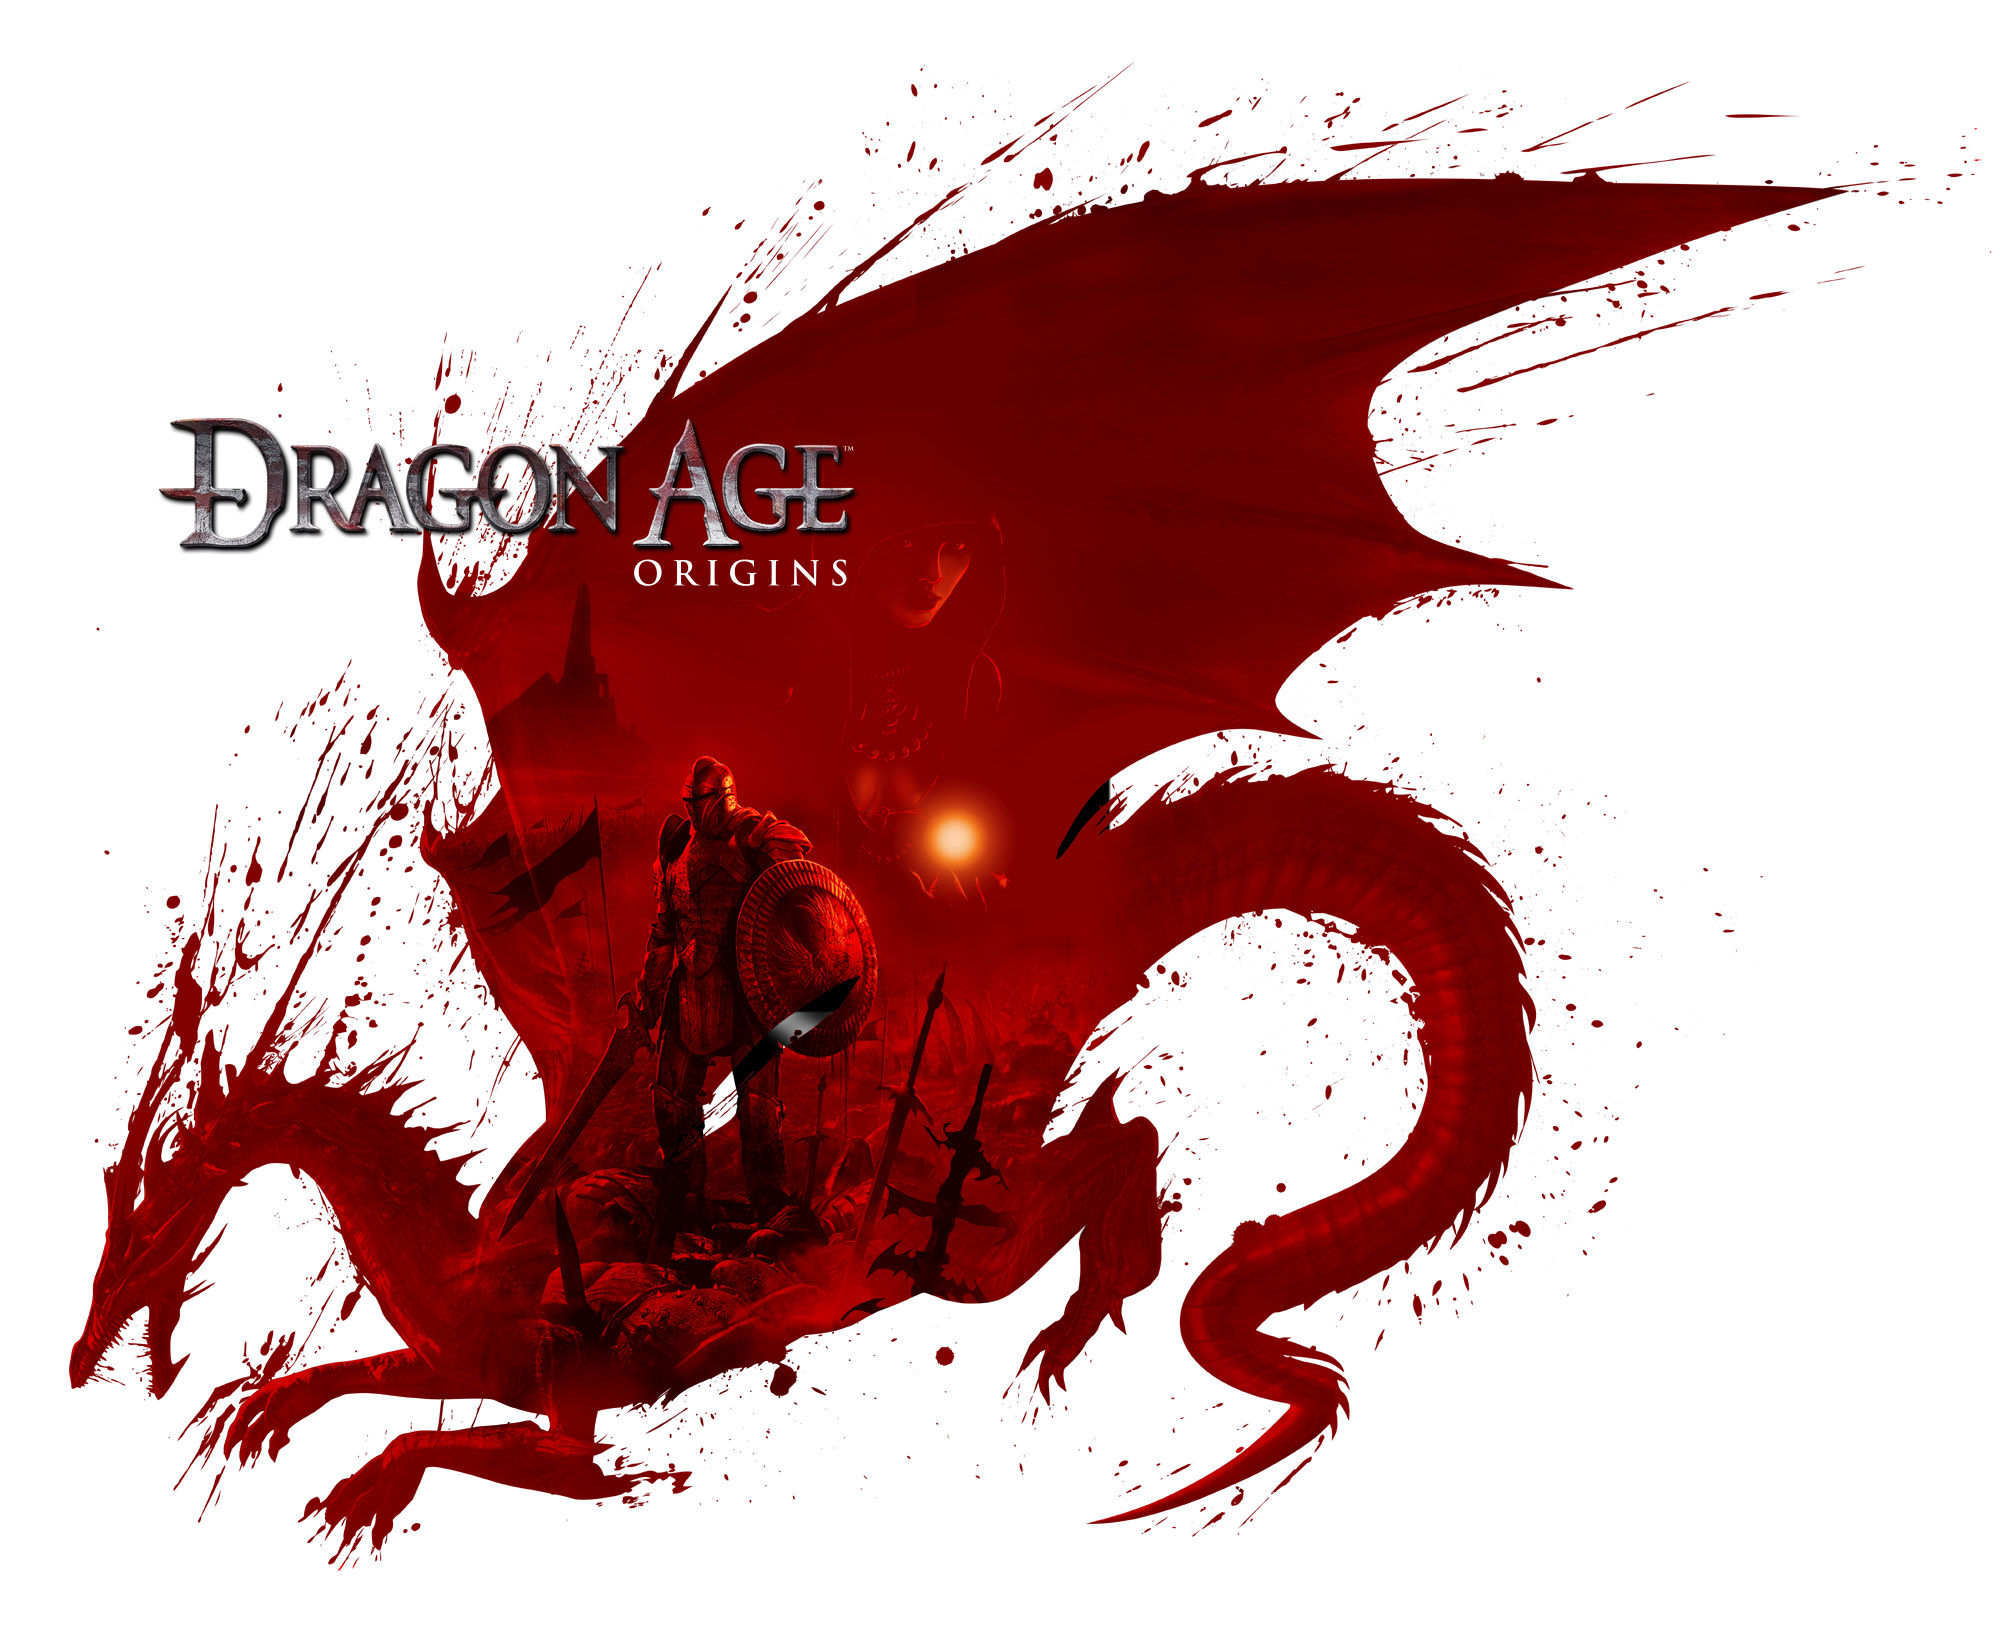 dragon age origins essay - survival school oh survival skill dragon age origins the economic collapse of venezuela your water heater contains many gallons of life-saving water the water possibly be emptied by way of water heater by opening the valve at the underside of the tank.